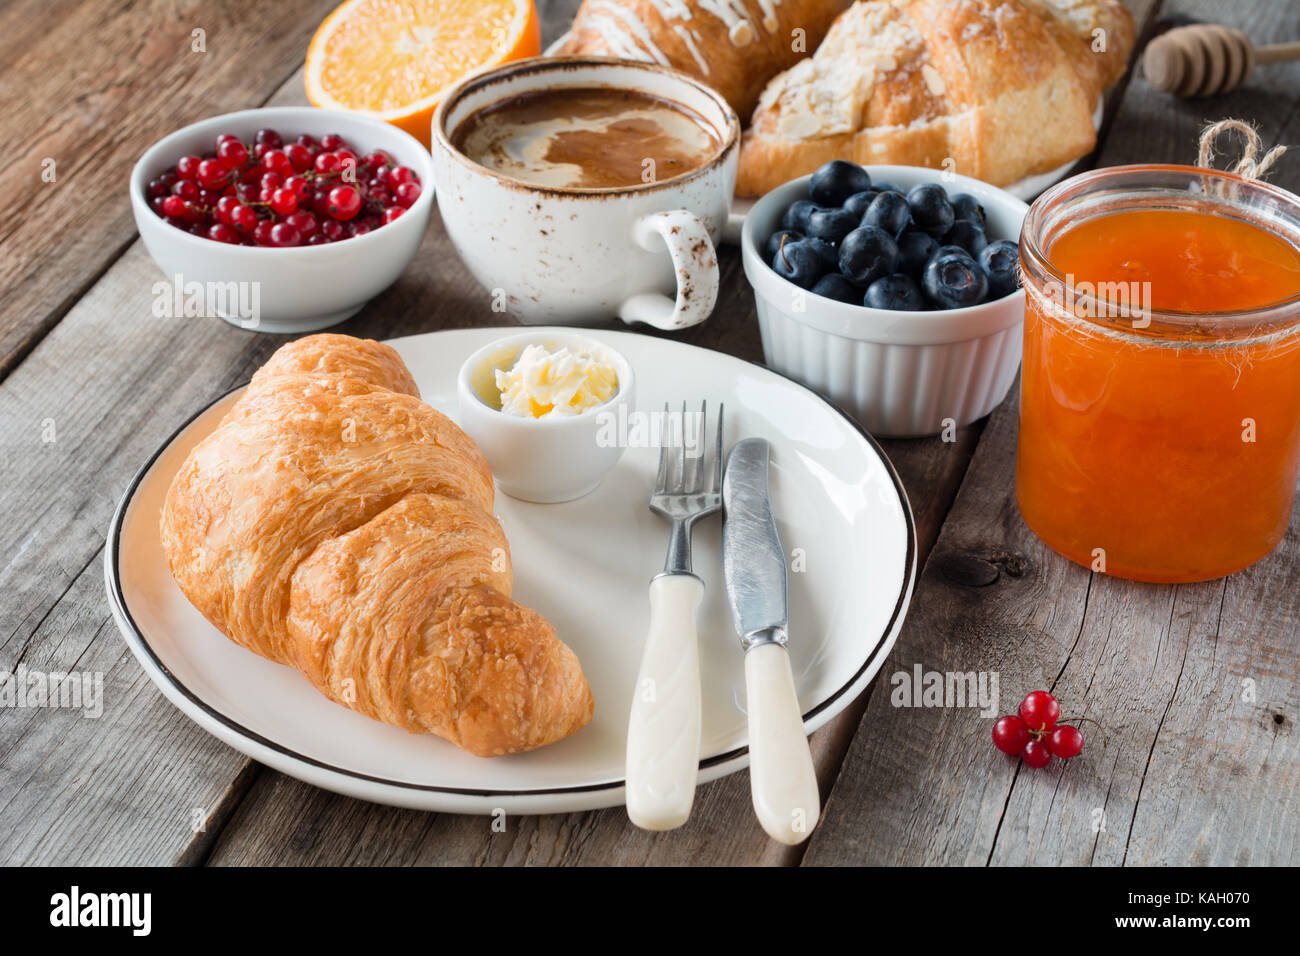 Continental breakfast fresh croissants with butter, cup of coffee, jam and fruits on wooden table. Closeup view, Stock Photo